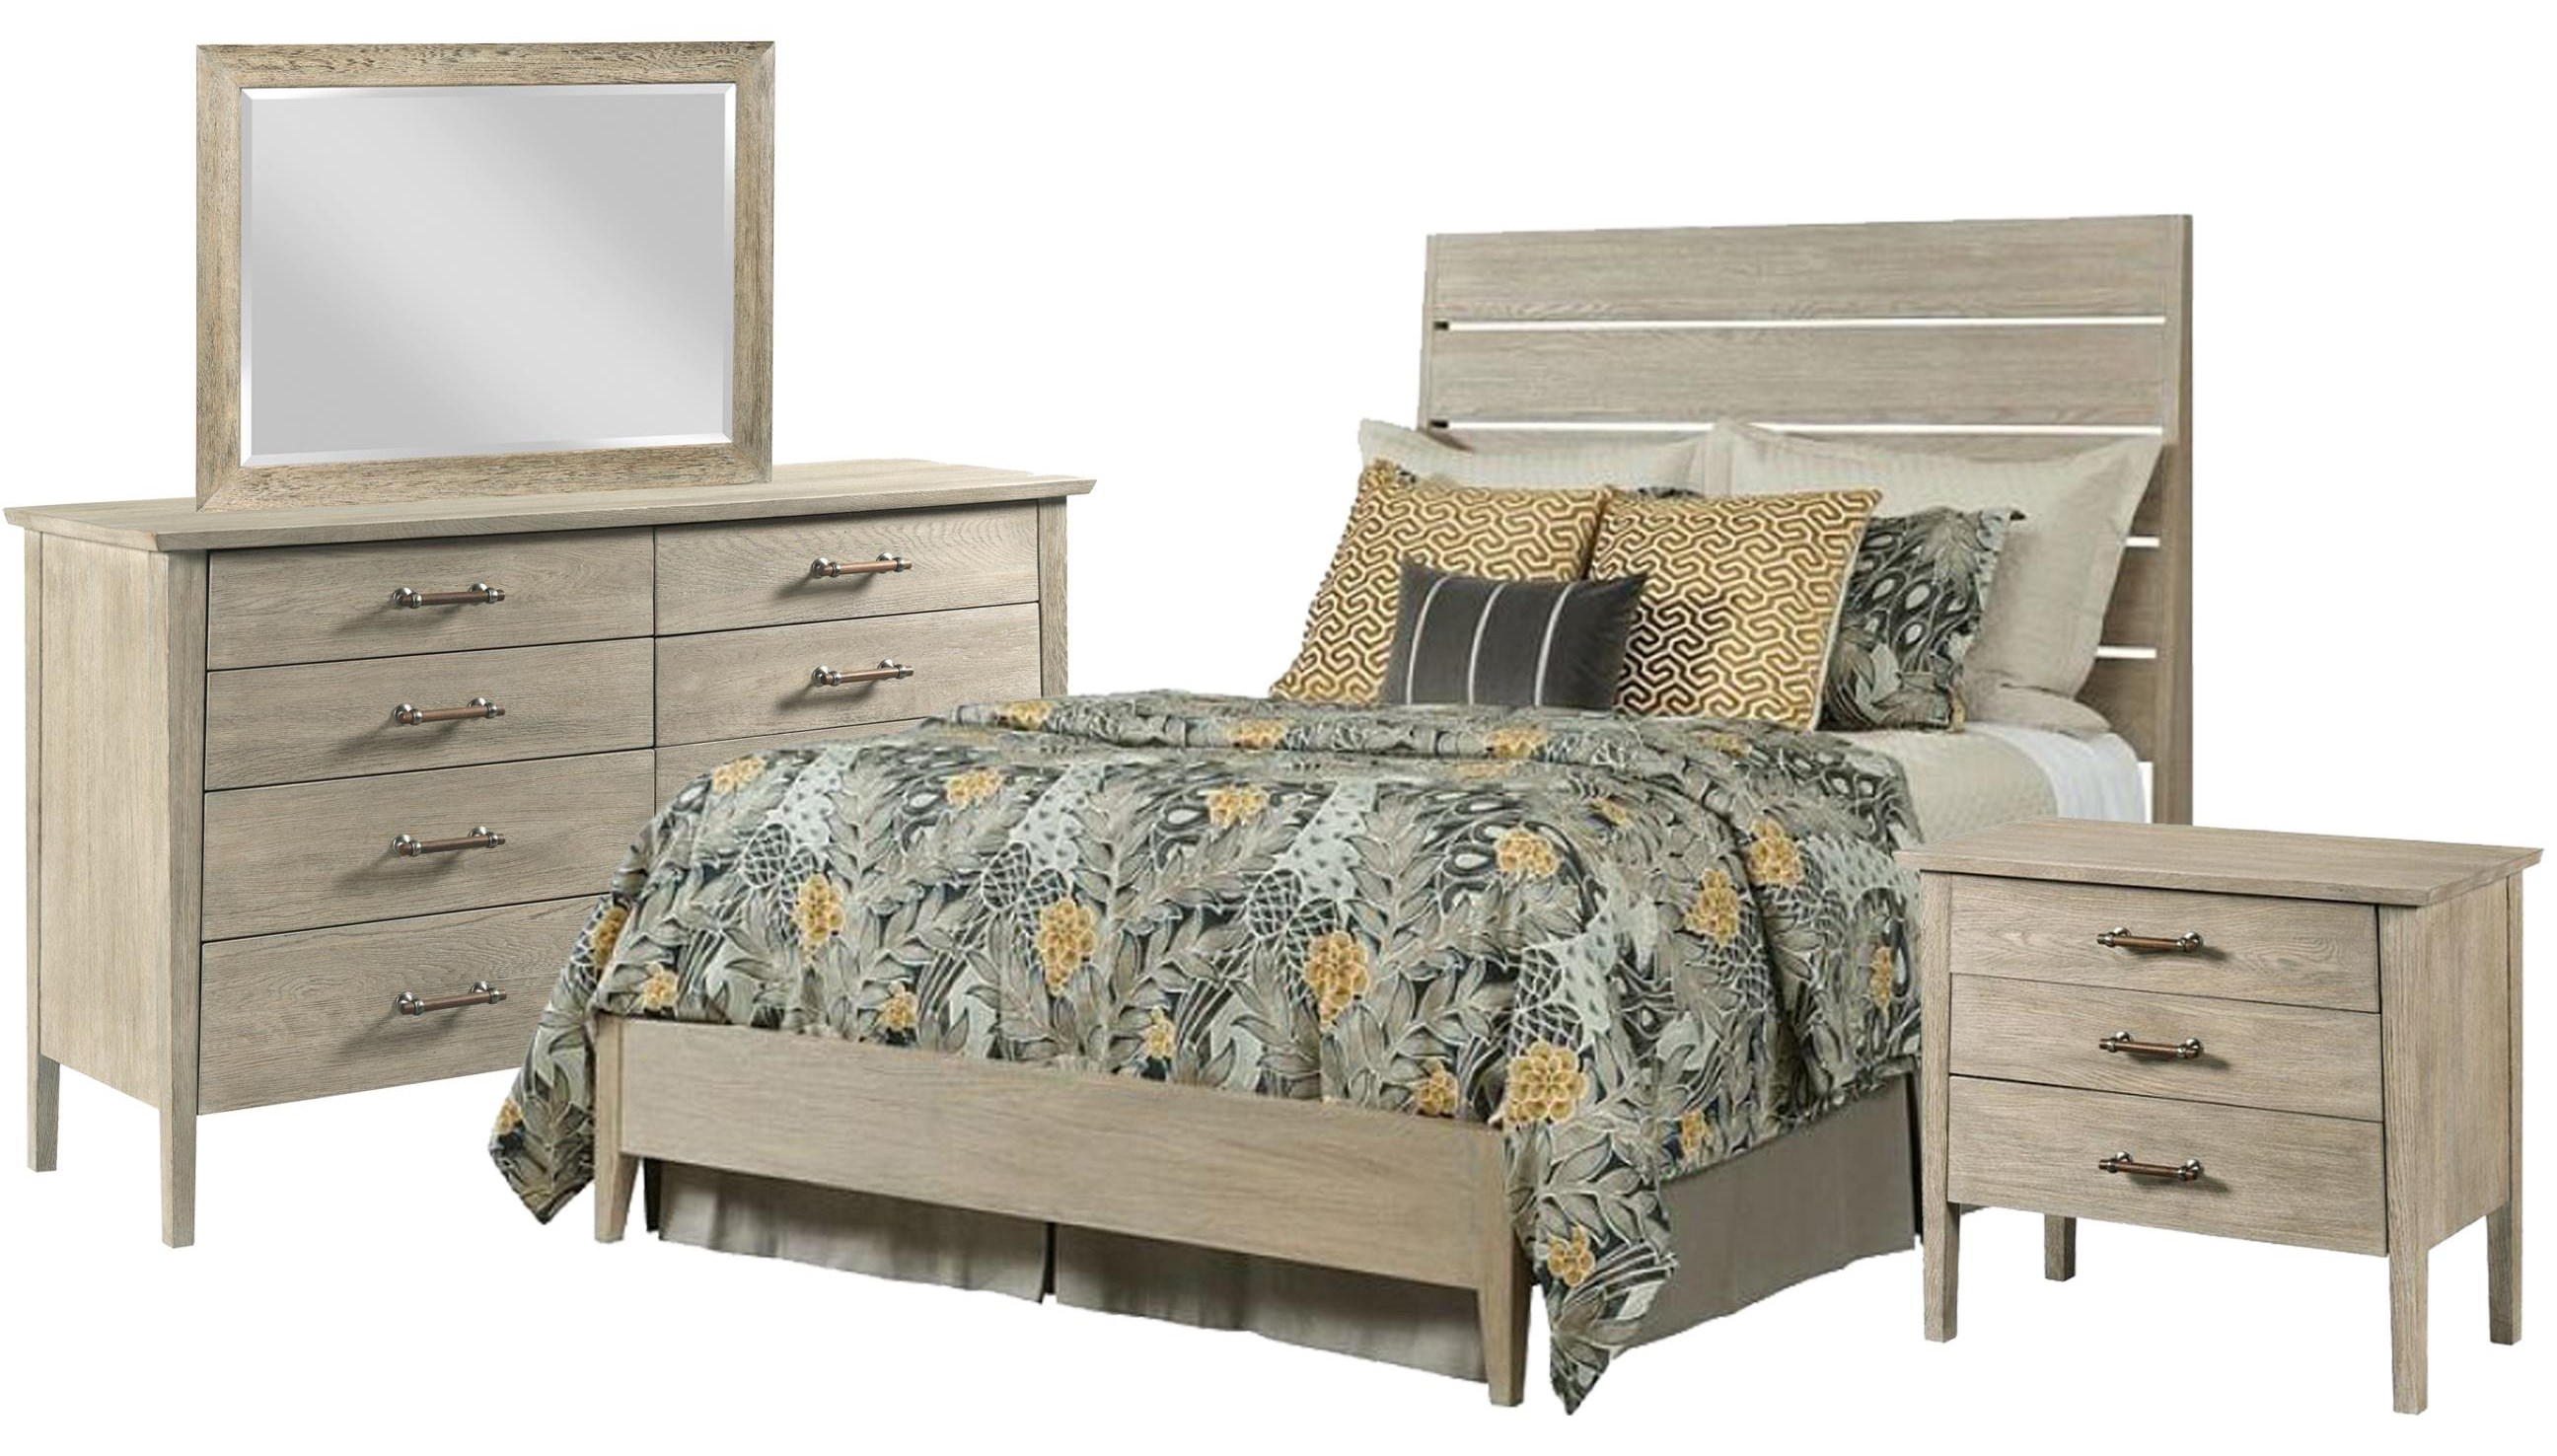 Symmetry King Bed, Dresser, Mirror, Nightstand by Kincaid Furniture at Johnny Janosik